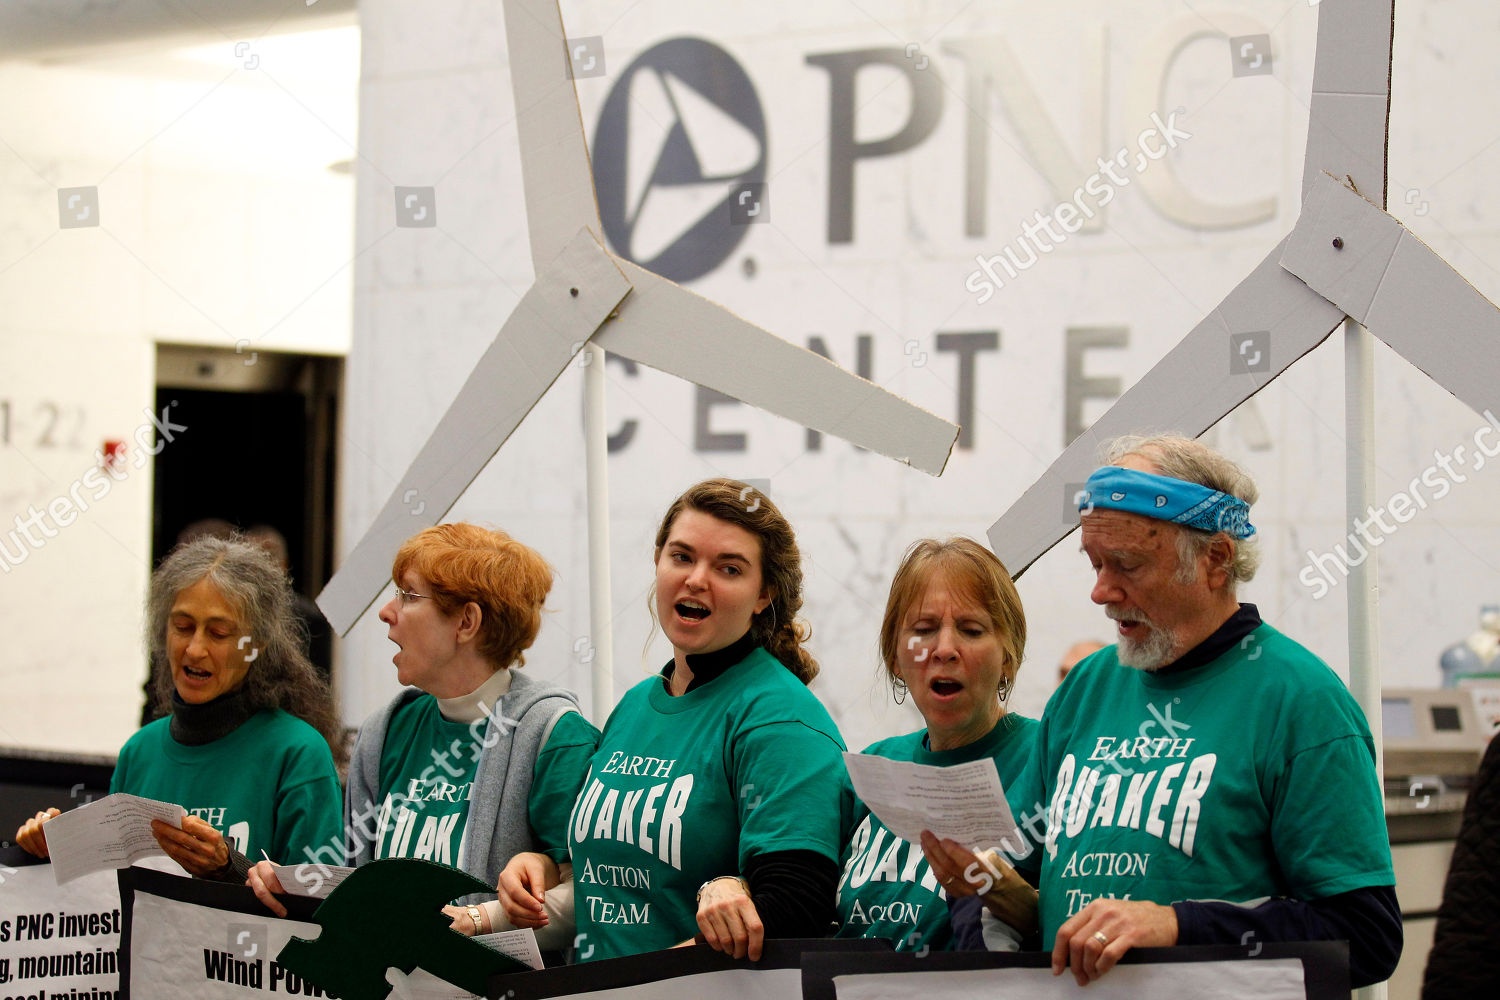 Amy Ward Brimmer Five Earth Quaker Action Editorial Stock Photo